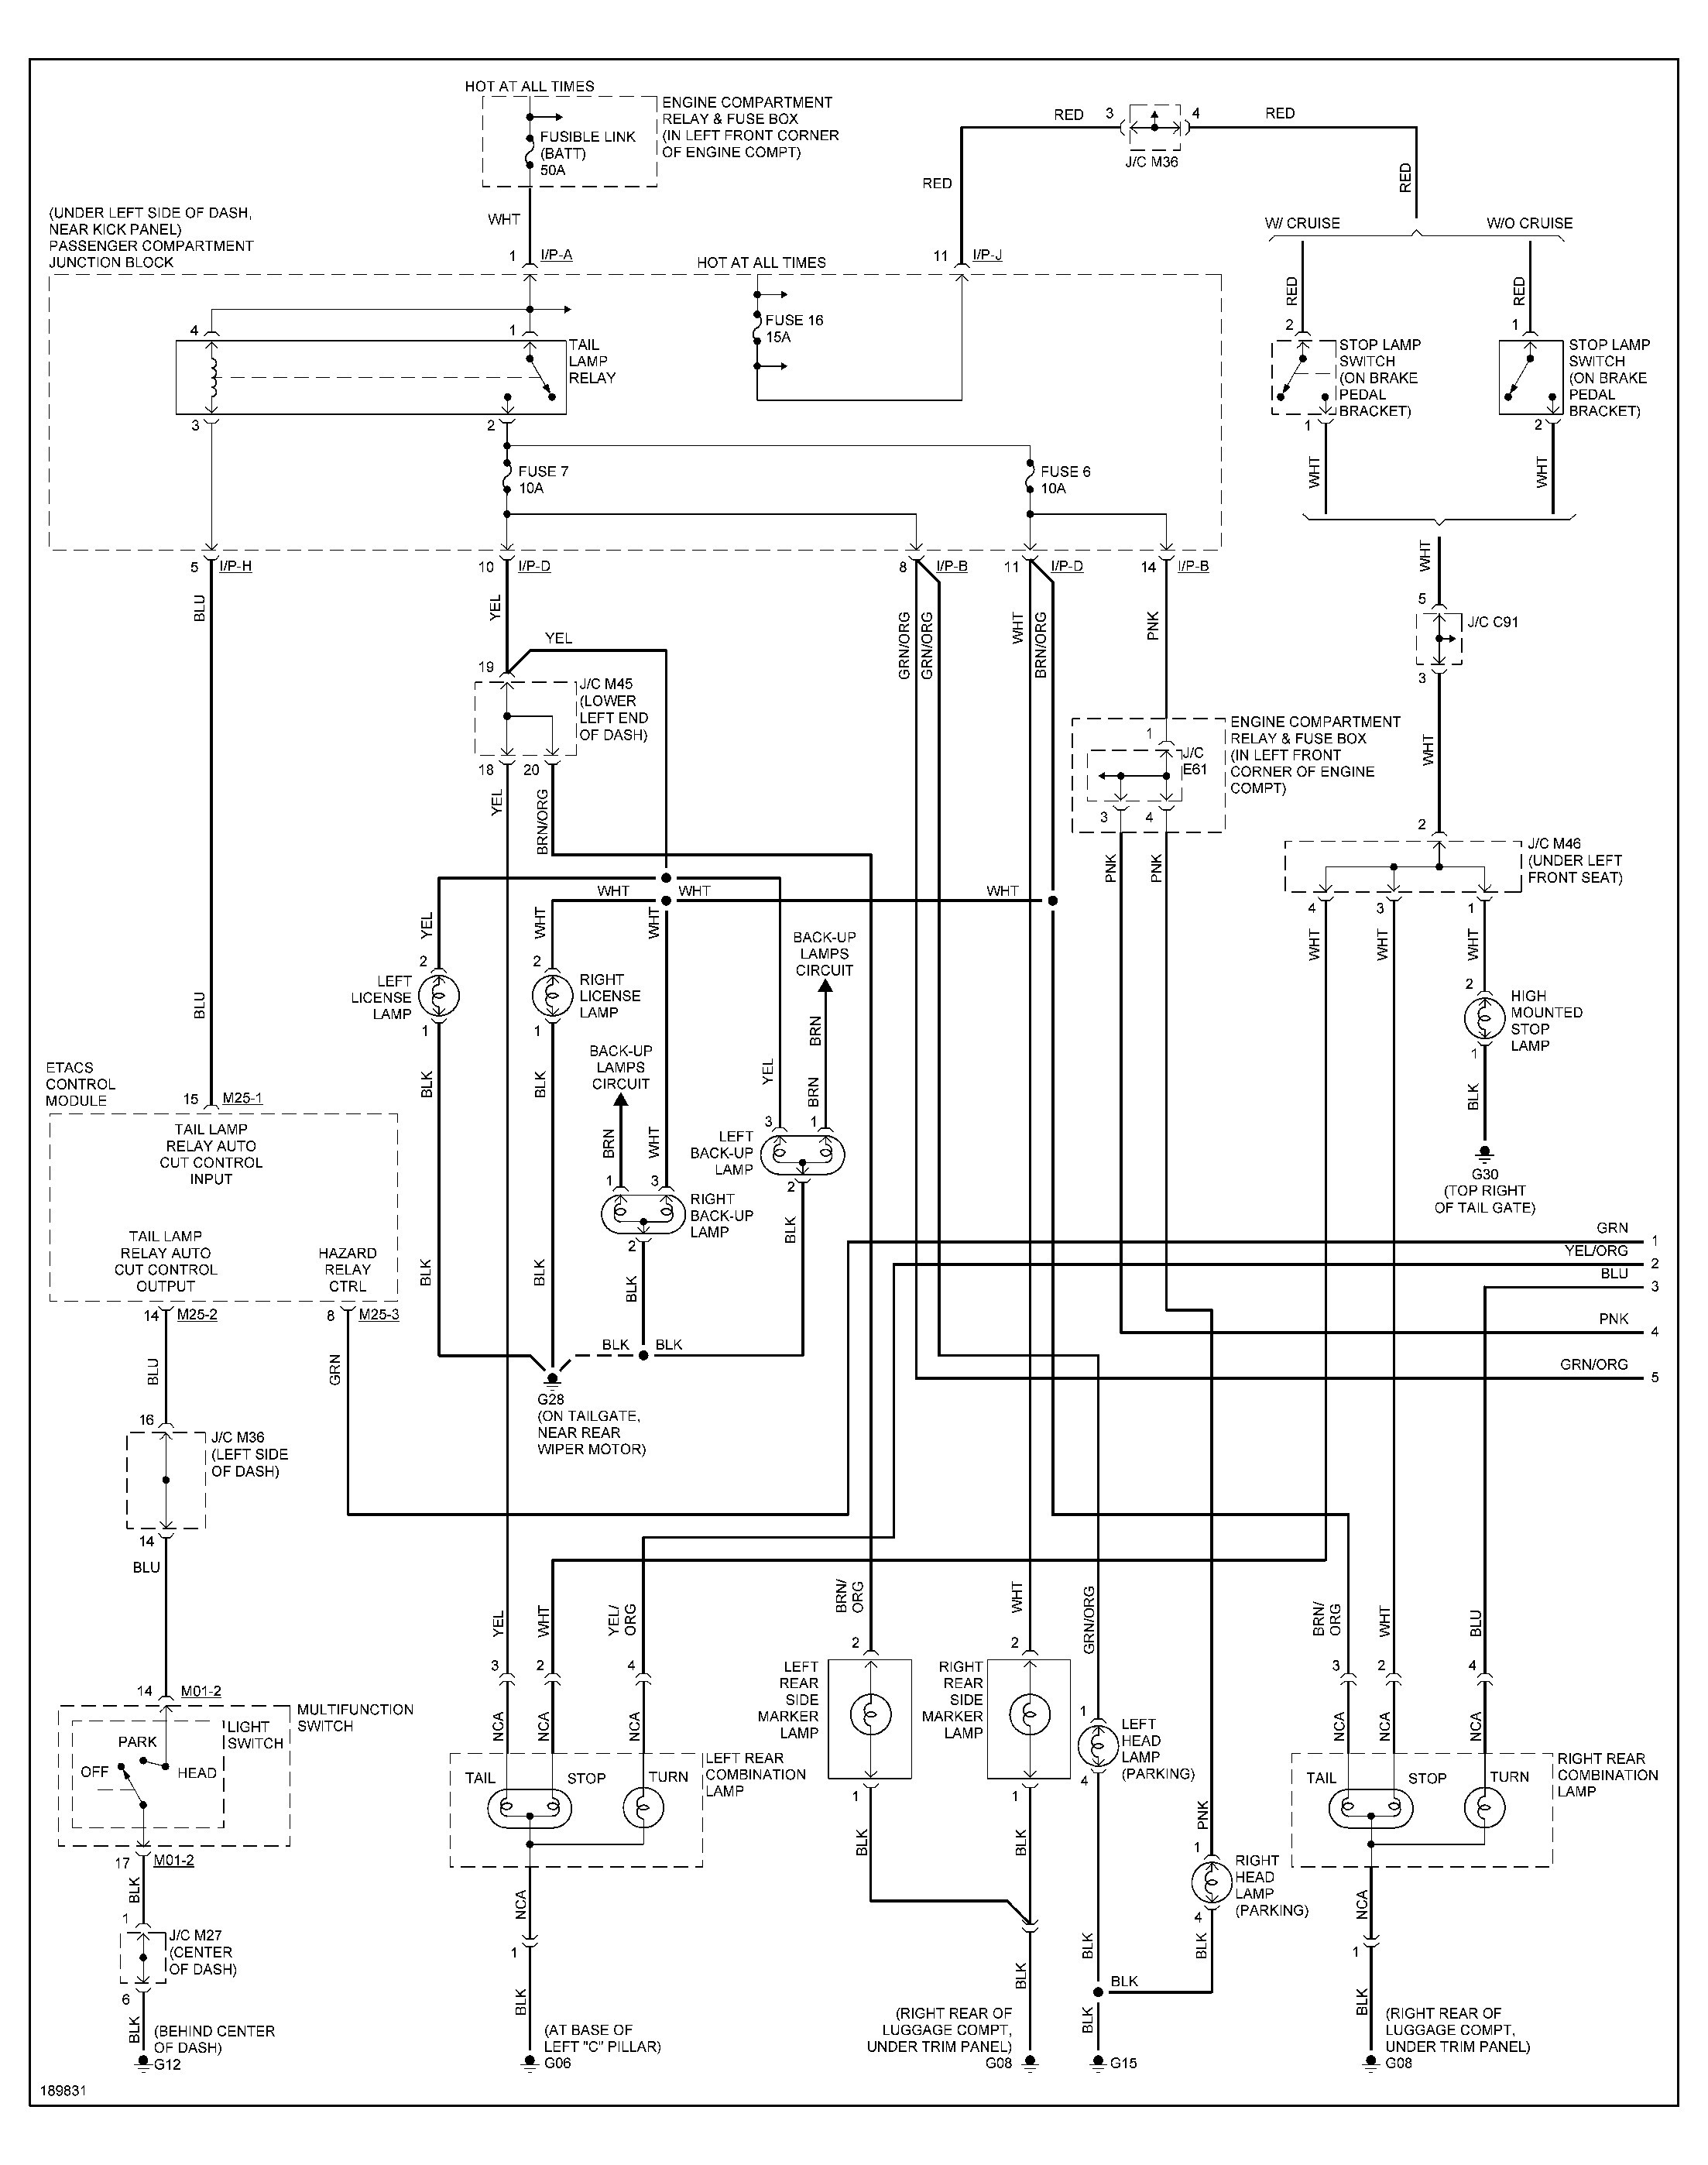 ☑ Hyundai Elantra Wiring Diagram HD Quality ☑ phase-diagrams .twirlinglucca.itDiagram Database - Twirlinglucca.it